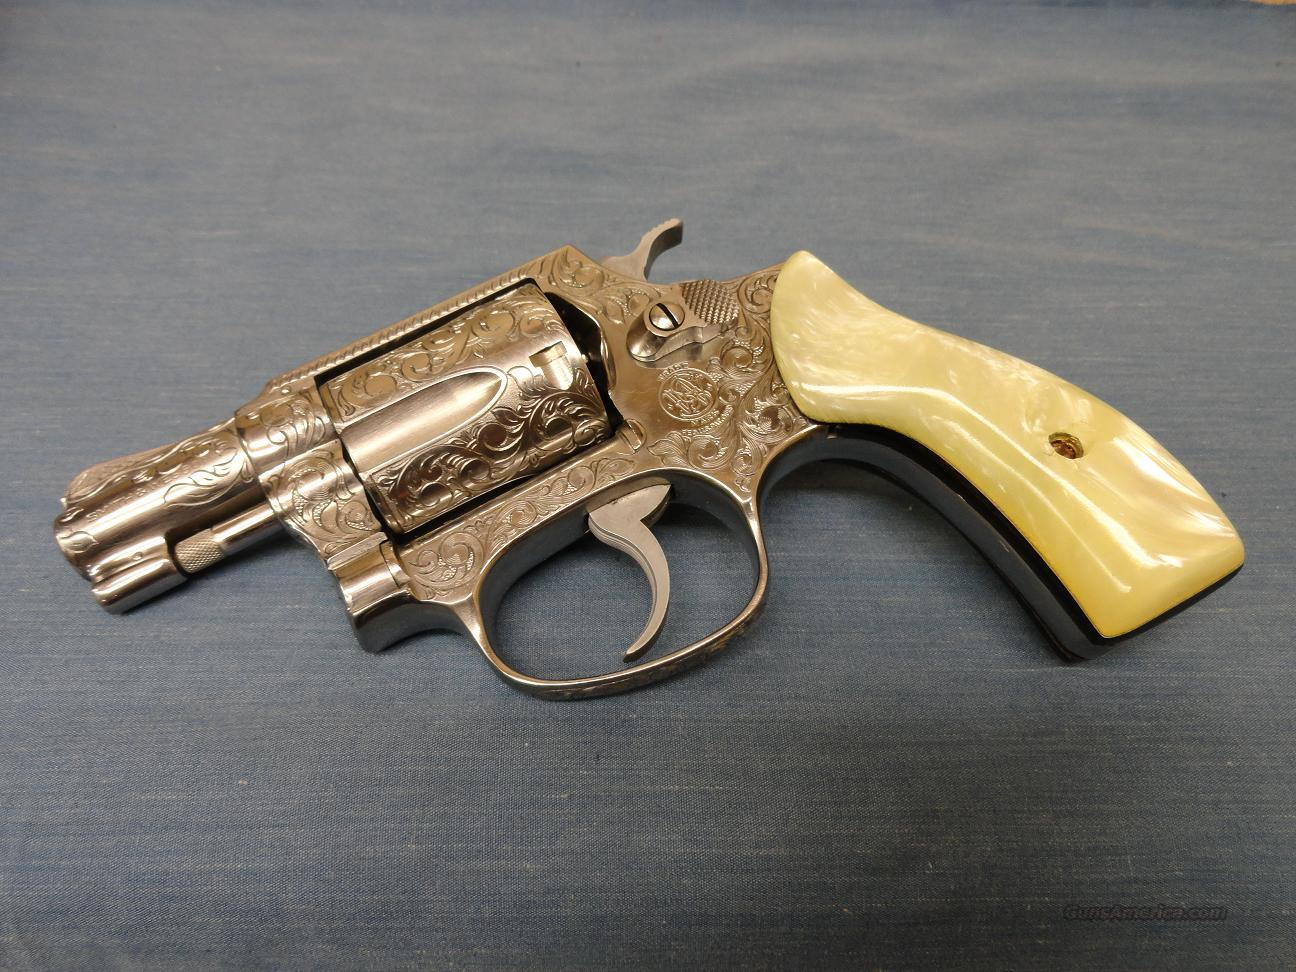 Smith & Wesson Model 60 .38 SPL. Chiefs Special   Guns > Pistols > Smith & Wesson Revolvers > Pocket Pistols